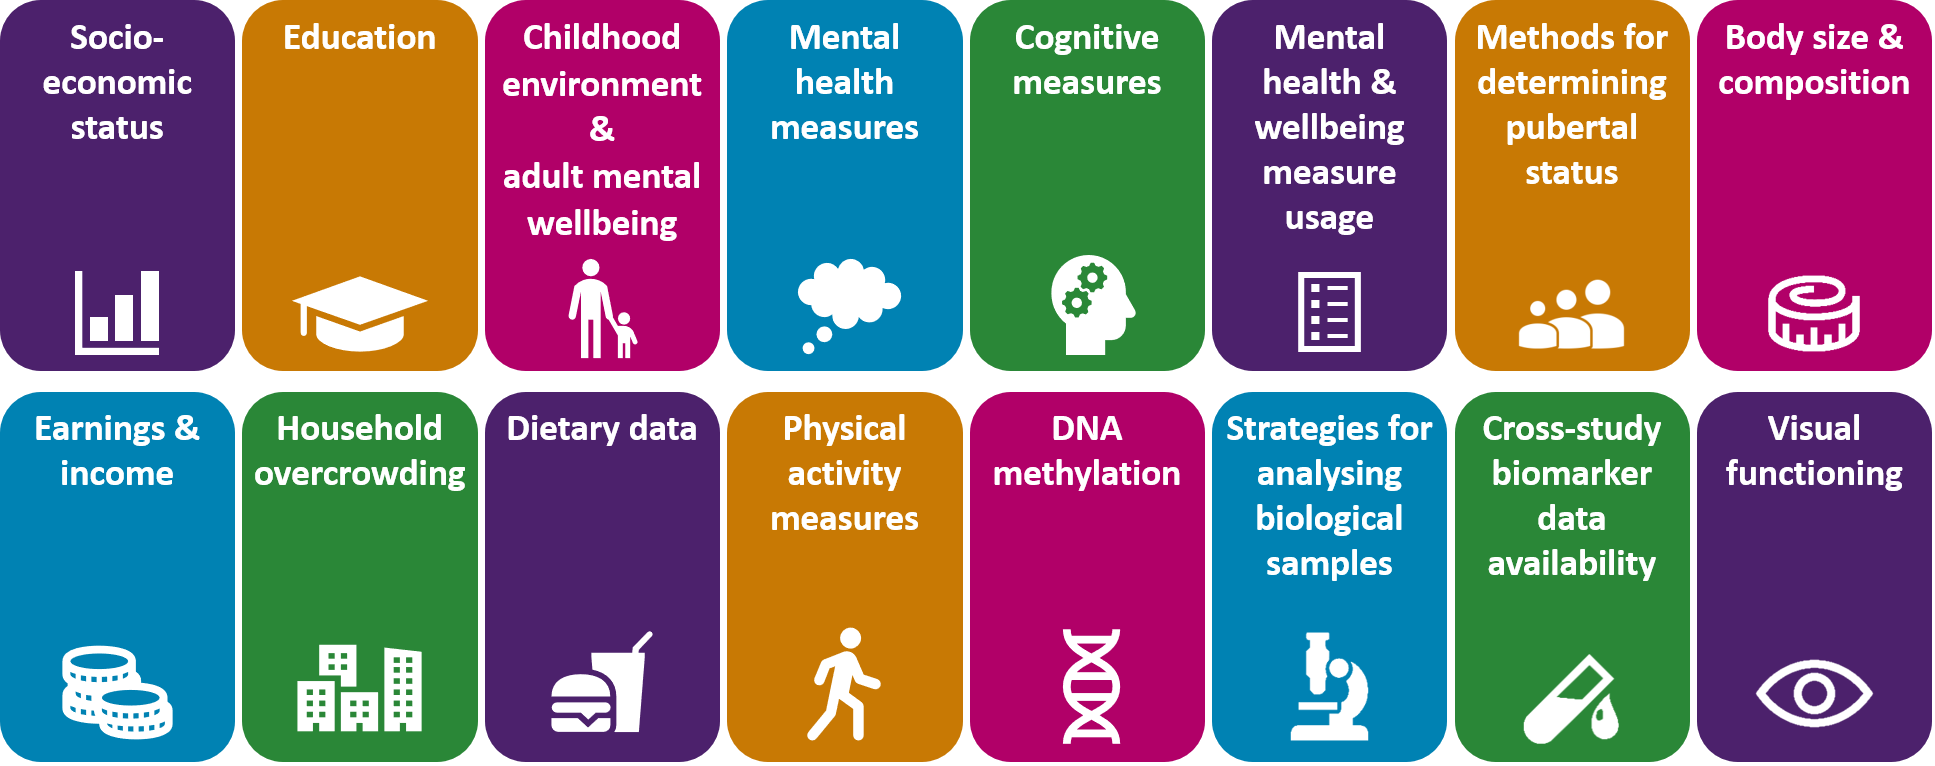 Graphic outlining the different harmonisation topics: socio-economic status, education, childhood environment and adult wellbeing, mental health measures, cognitive measures, mental health and wellbeing measure usage, methods for determining pubertal status, body size and composition, earnings and income, household overcrowding, dietary data, physical activity measures, DNA methylation, strategies for analysing biological samples, cross-study biomarker data availability, and visual functioning